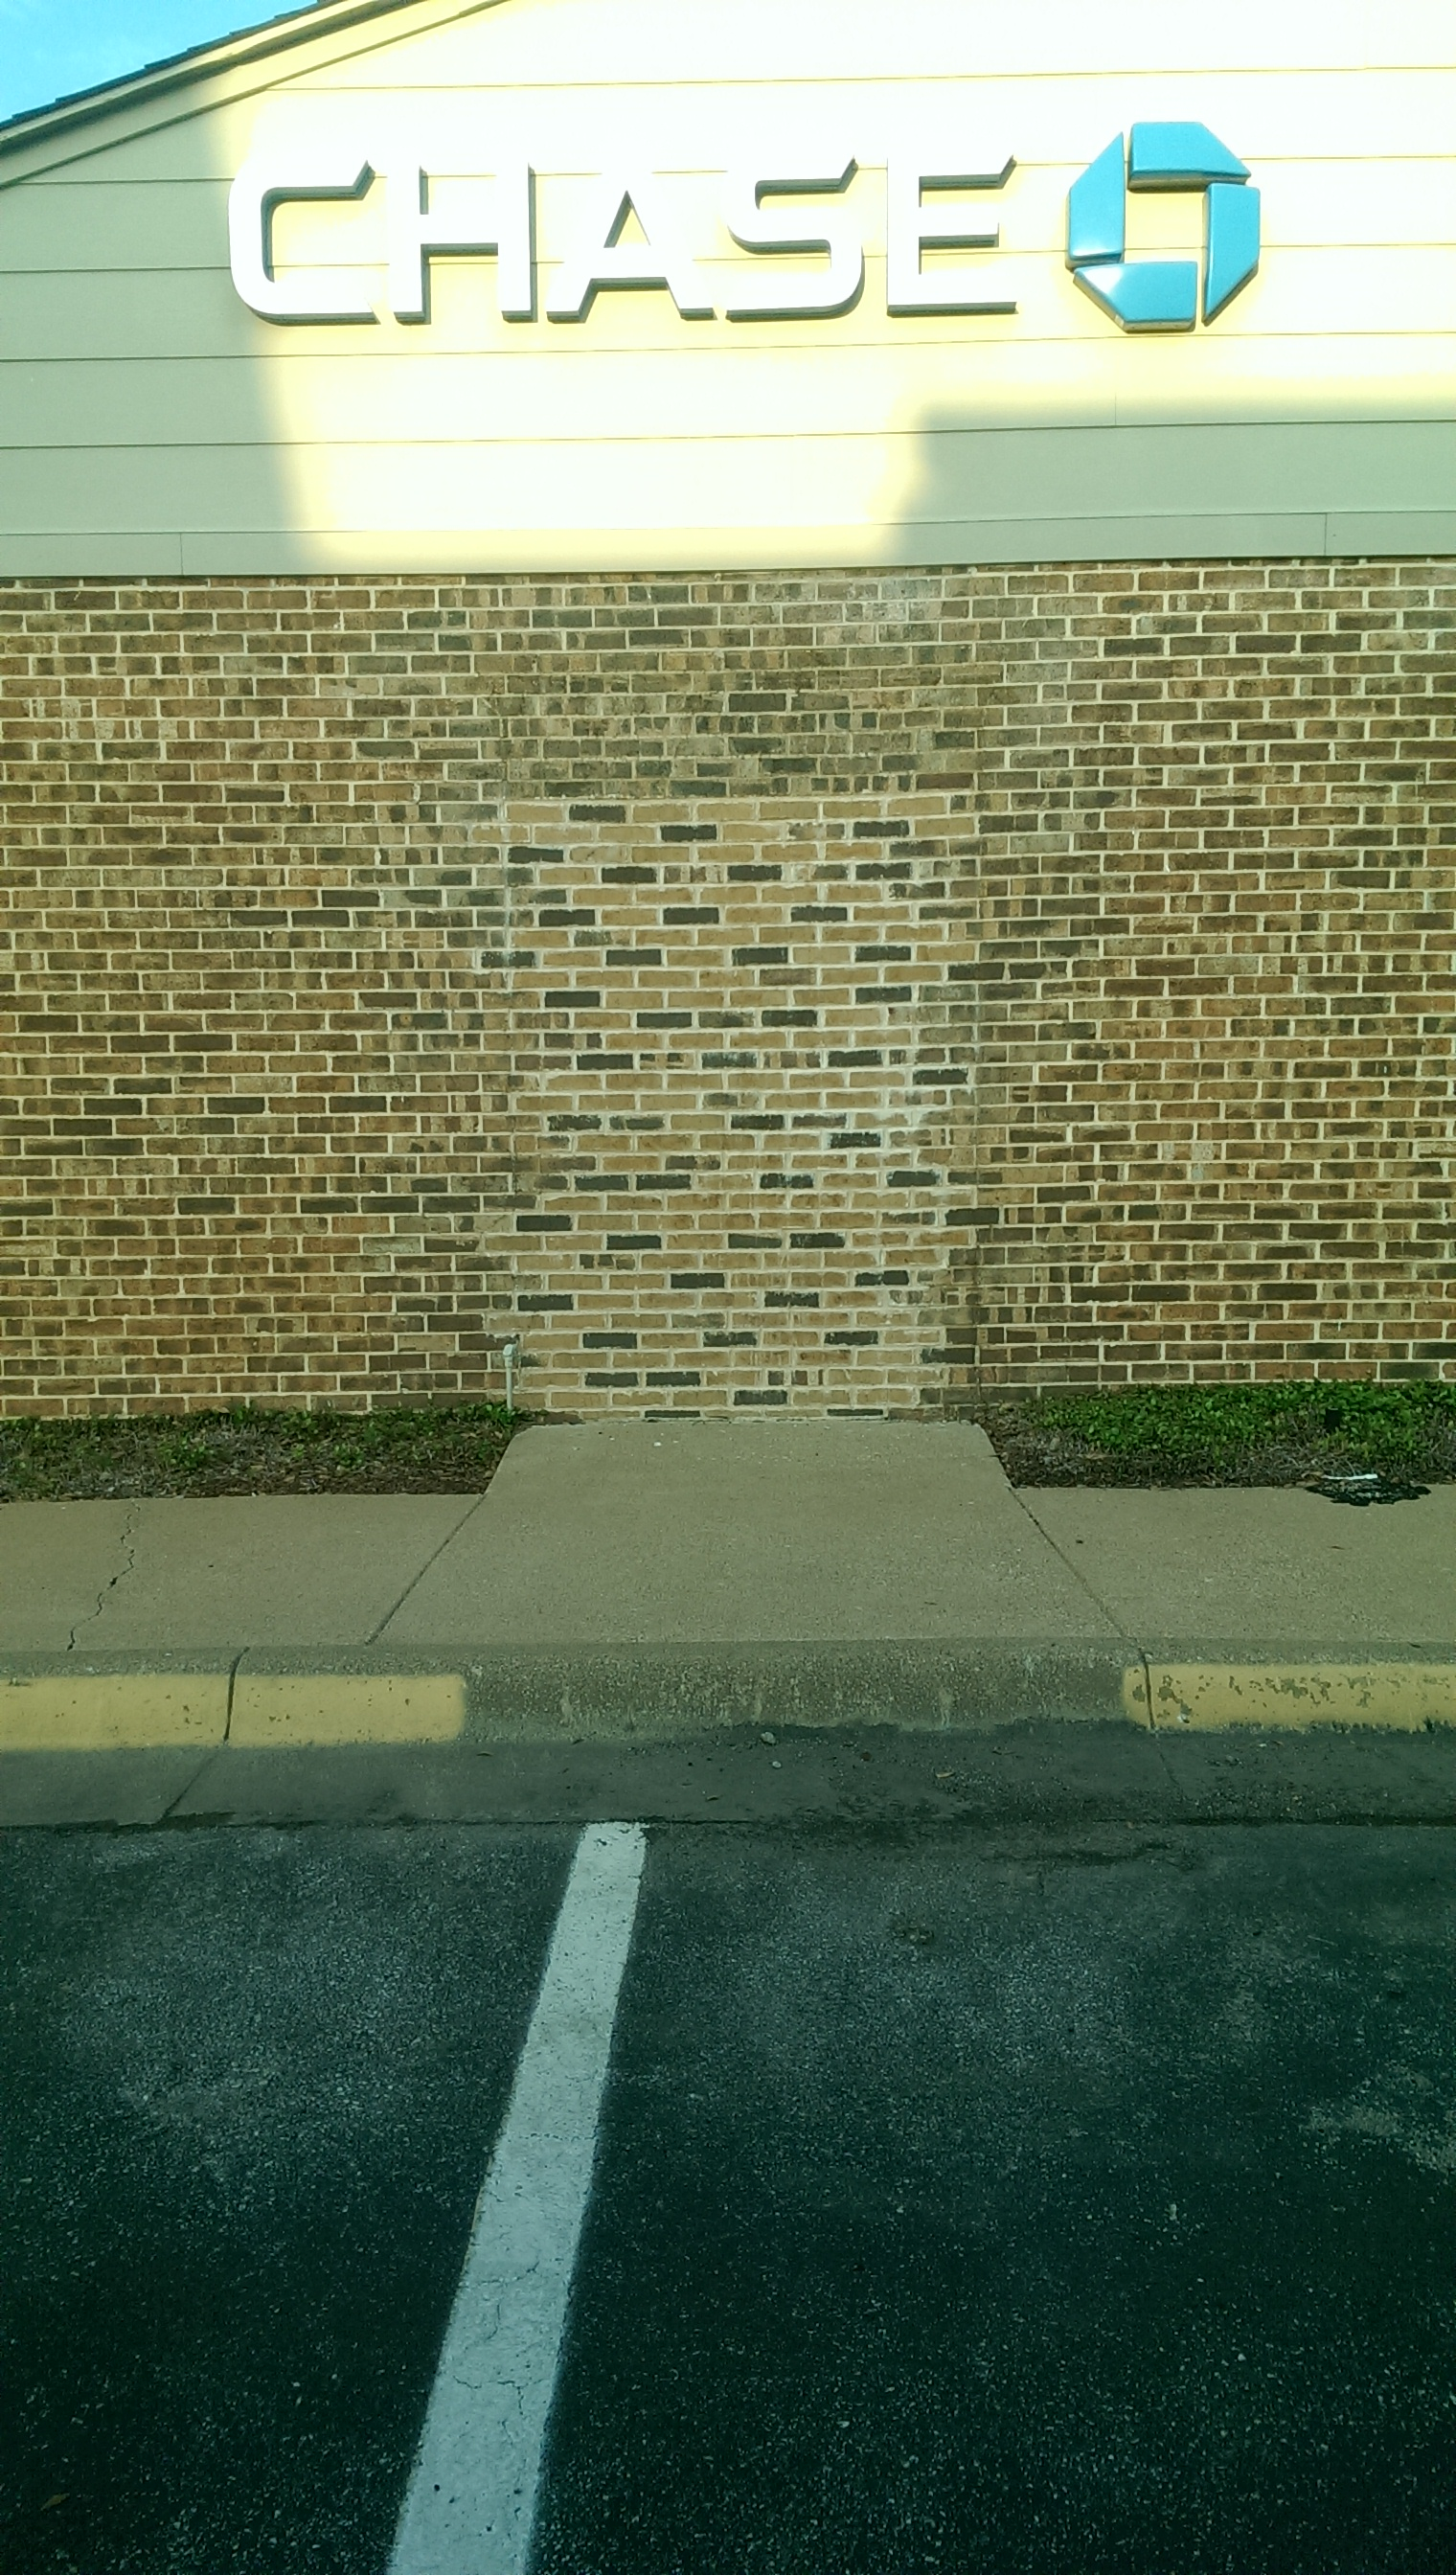 If videogames have taught me anything, I can bomb this wall to find a secret.